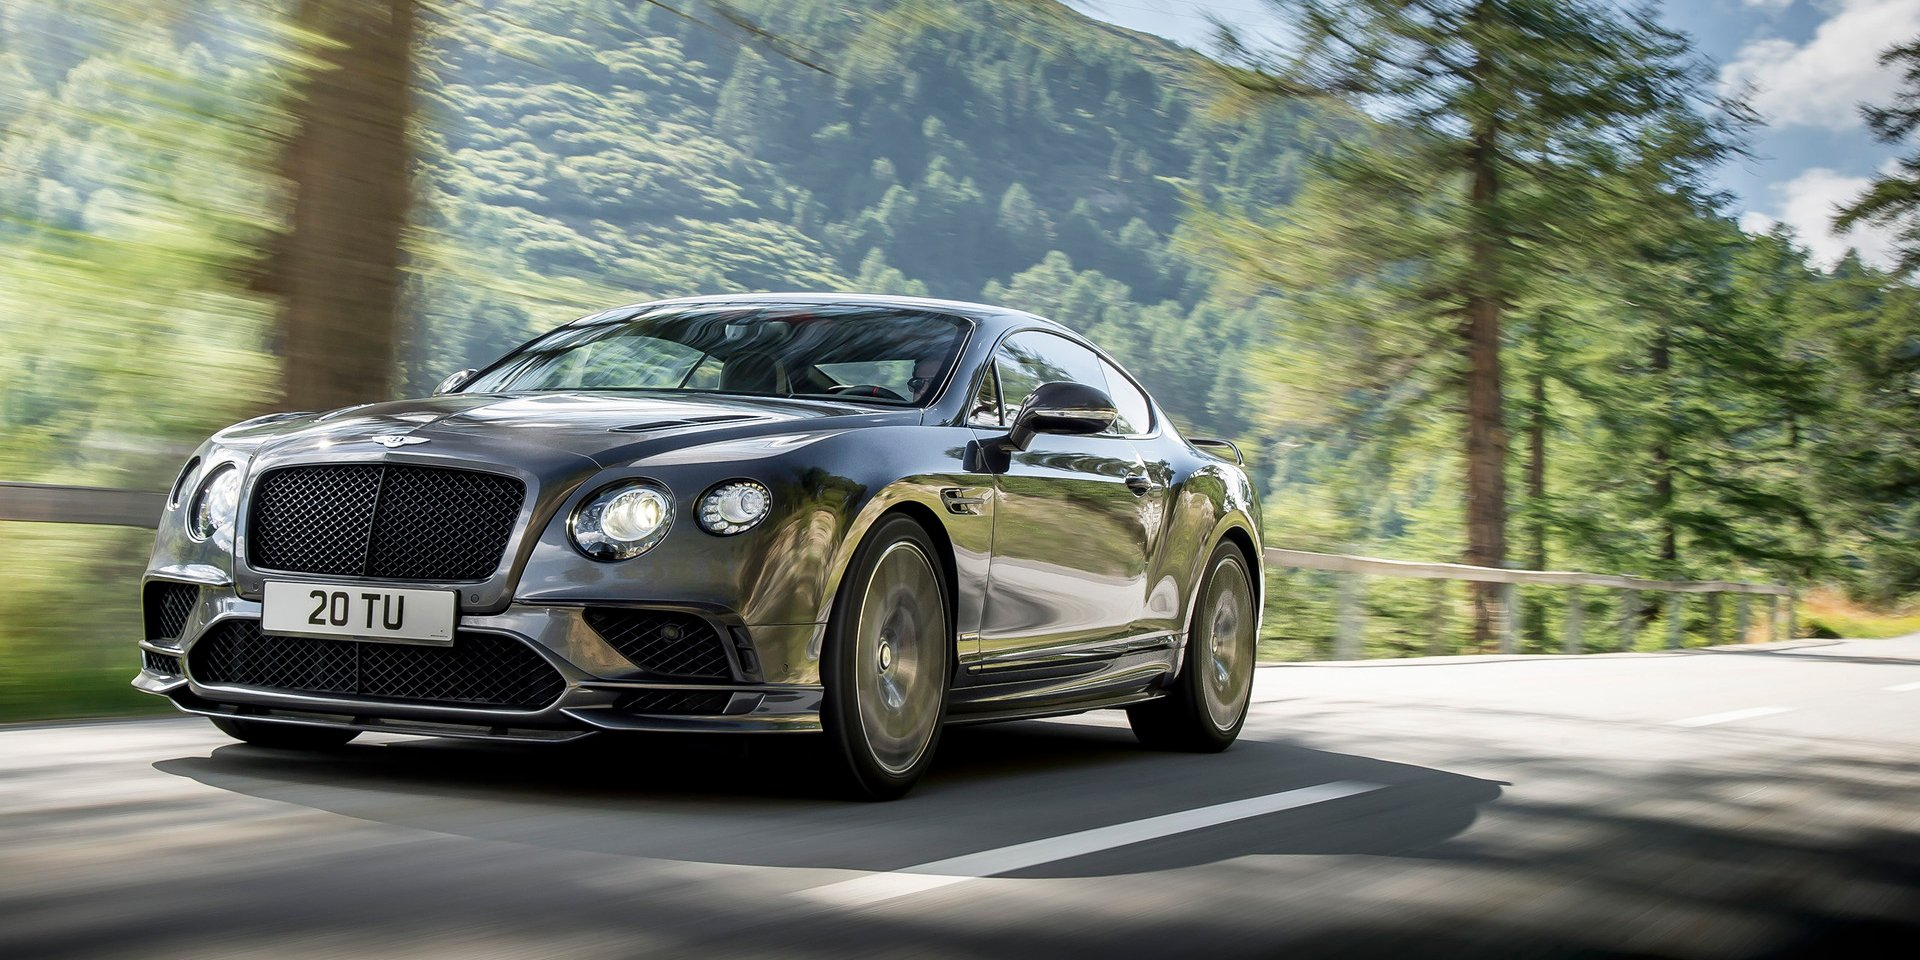 2017 Bentley Continental GT Supersports